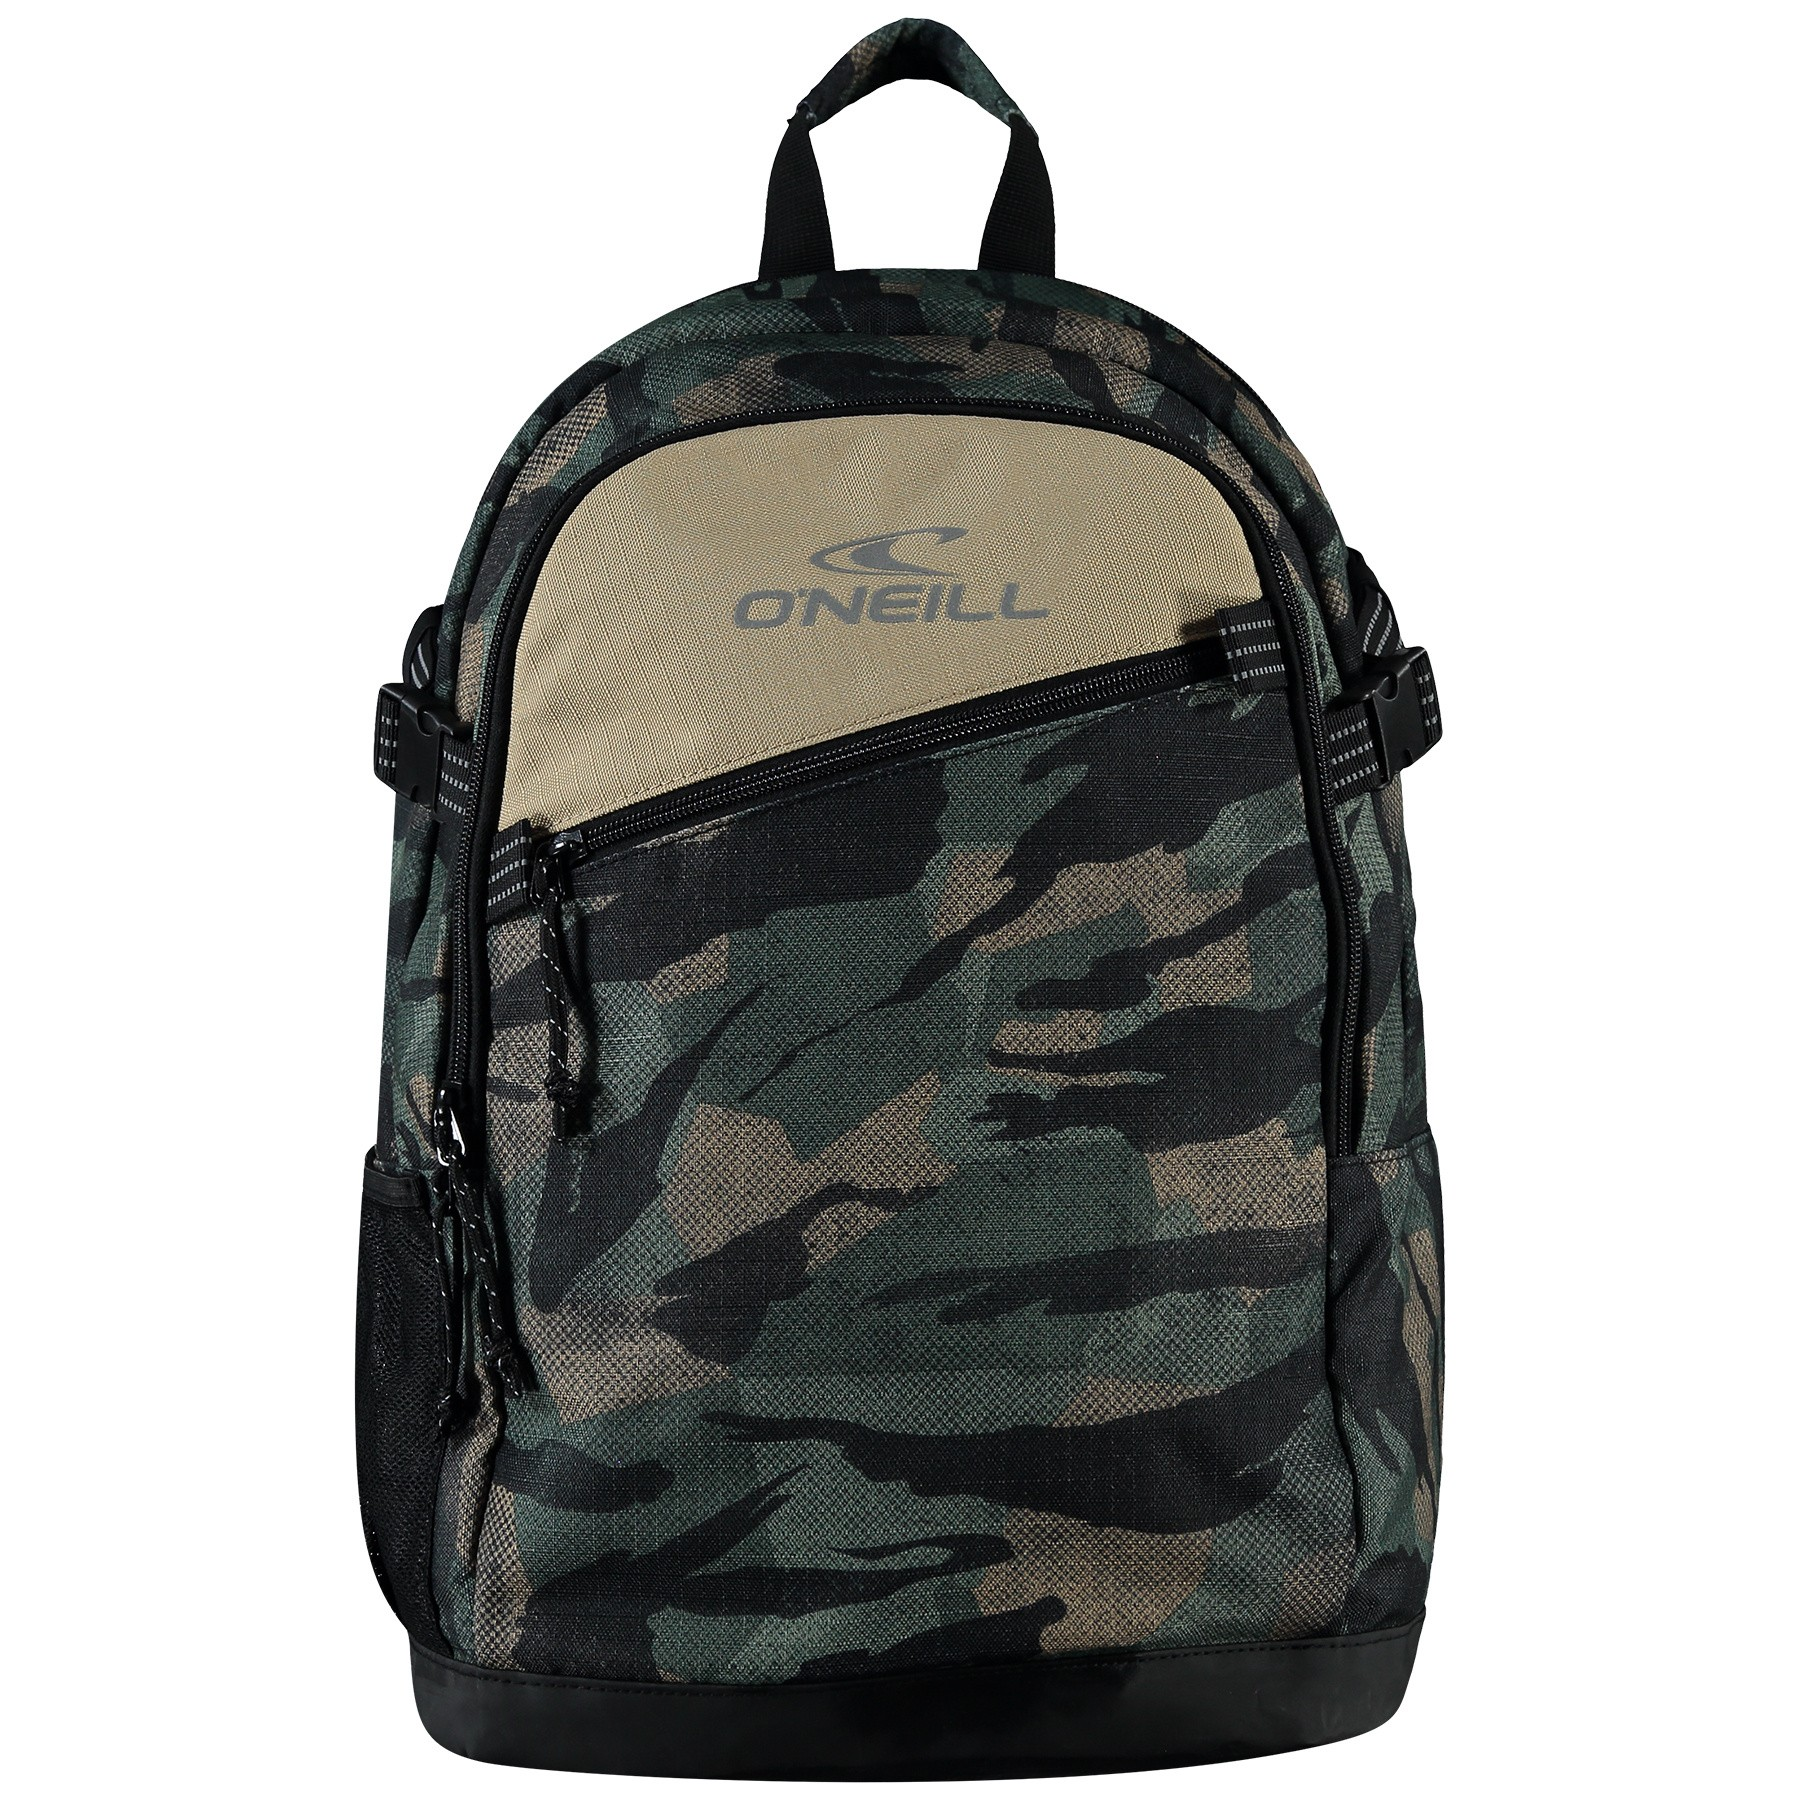 O'Neill Easy Rider Backpack 6990 Green AOP